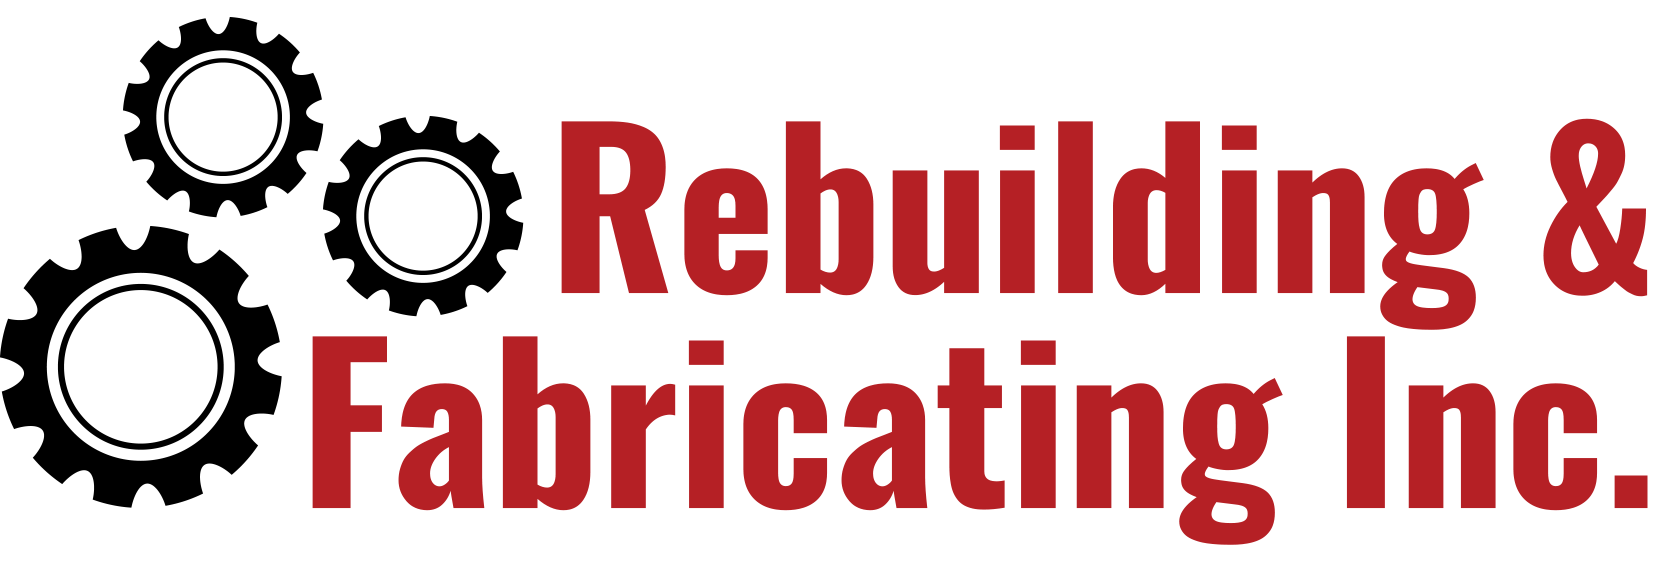 Rebuilding And Fabricating Inc